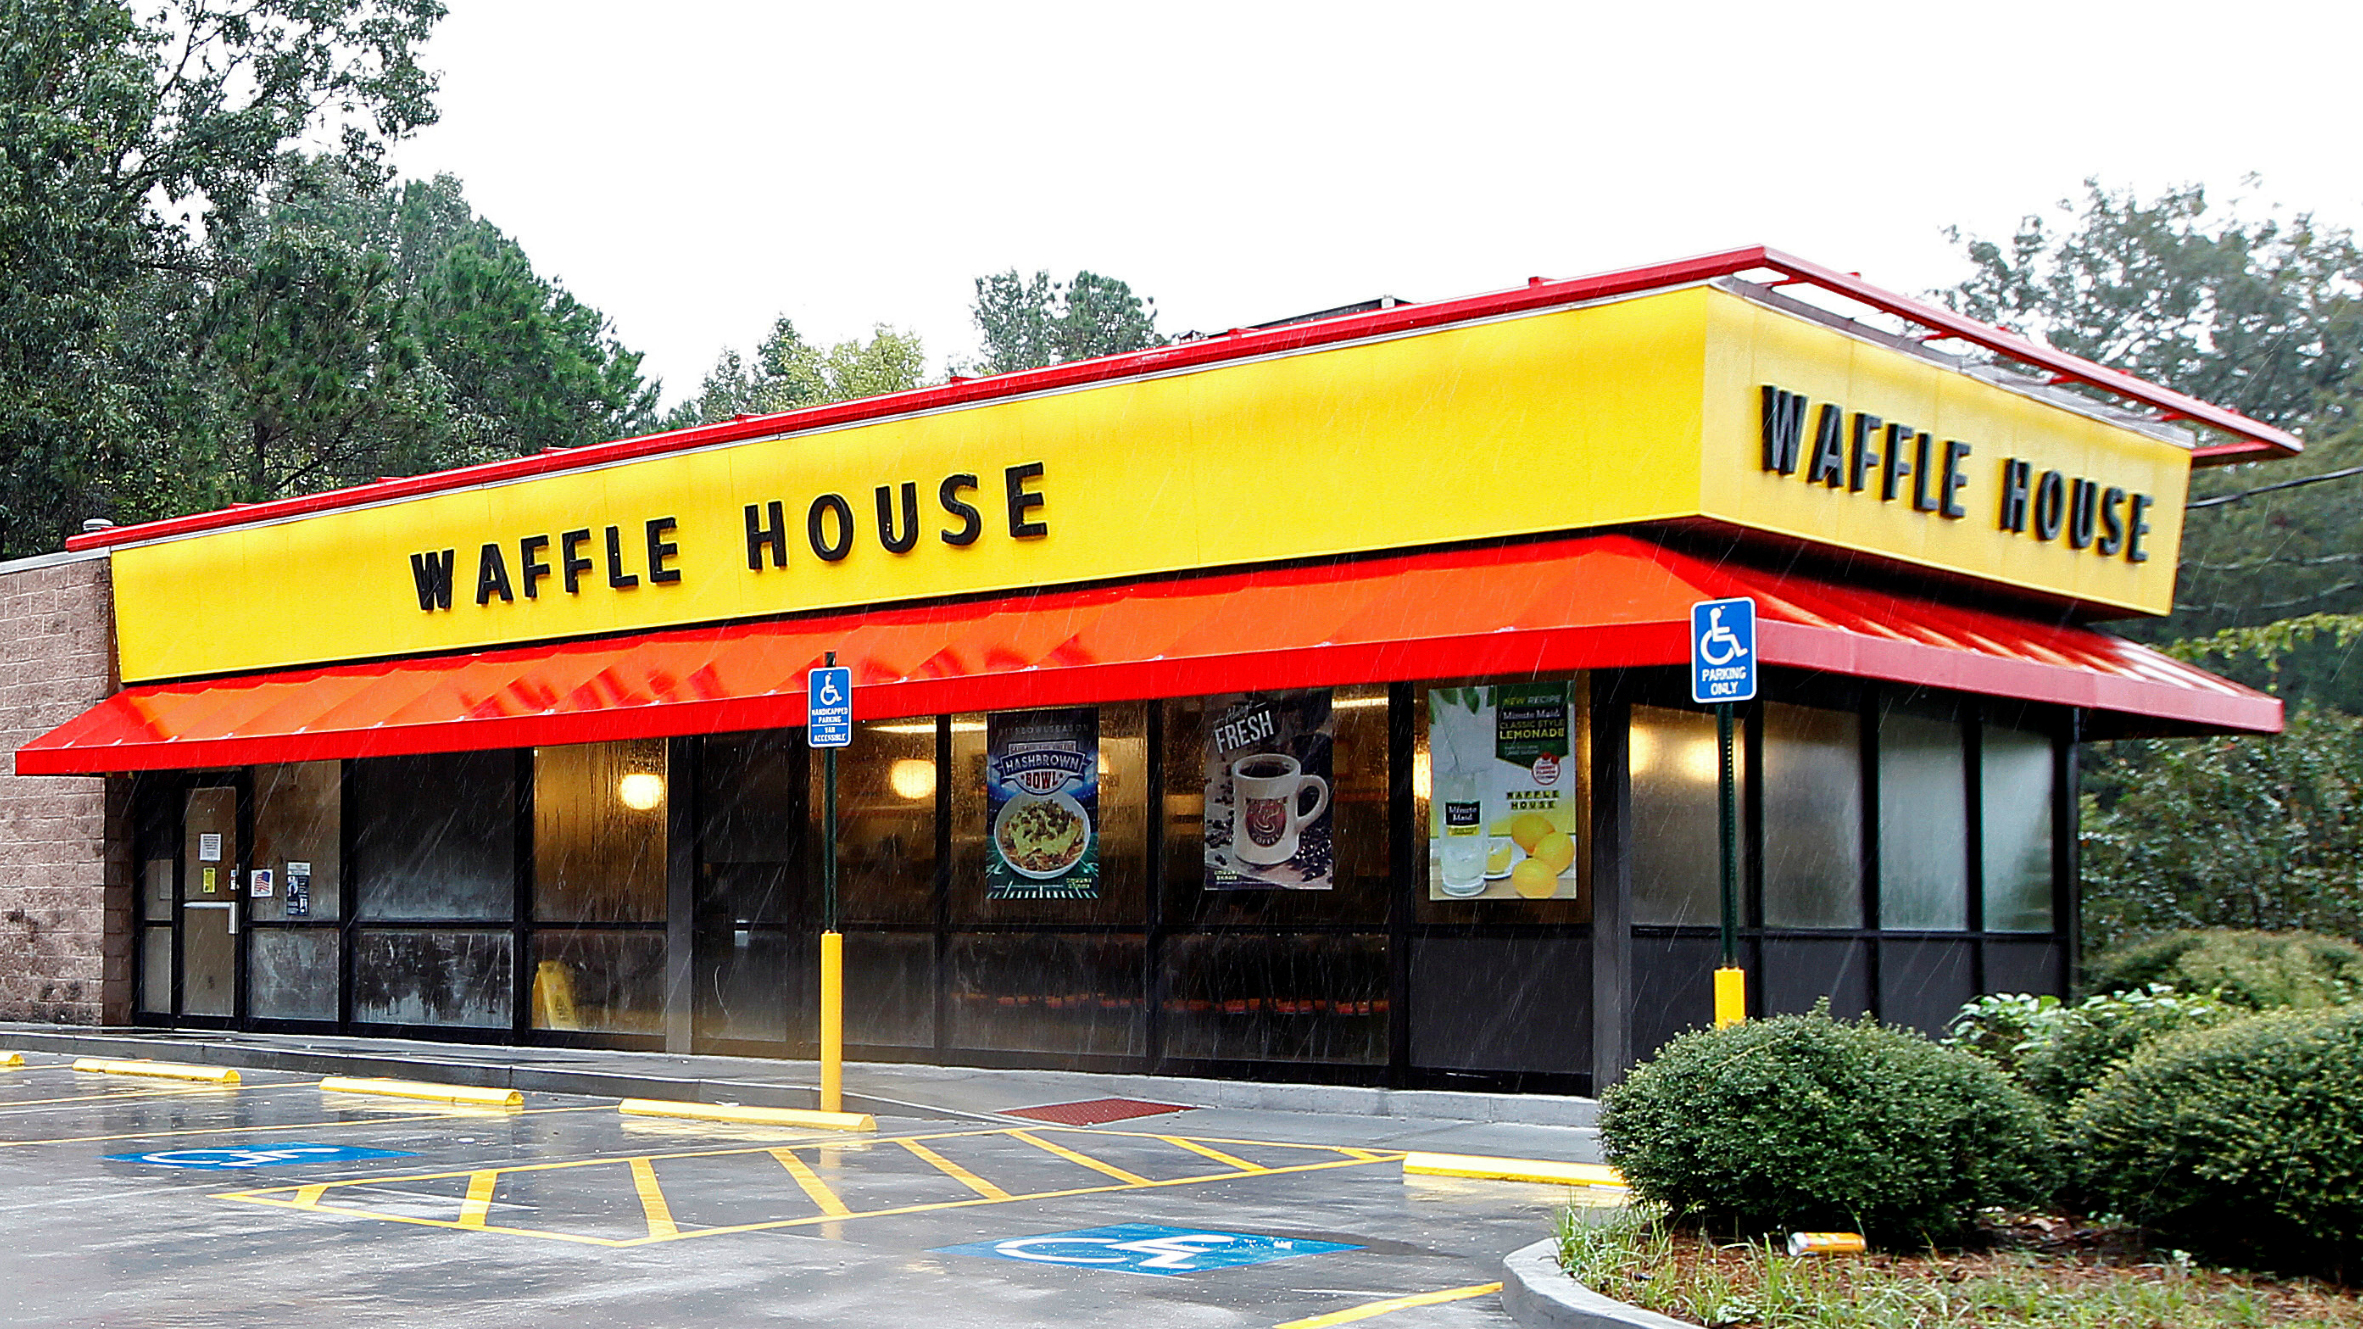 the waffle house The waffle palace is a smart, ensemble-based comedy set in atlanta that brings our diverse community on stage in a highly theatrical story with music, dance, waffles, and audience interaction.